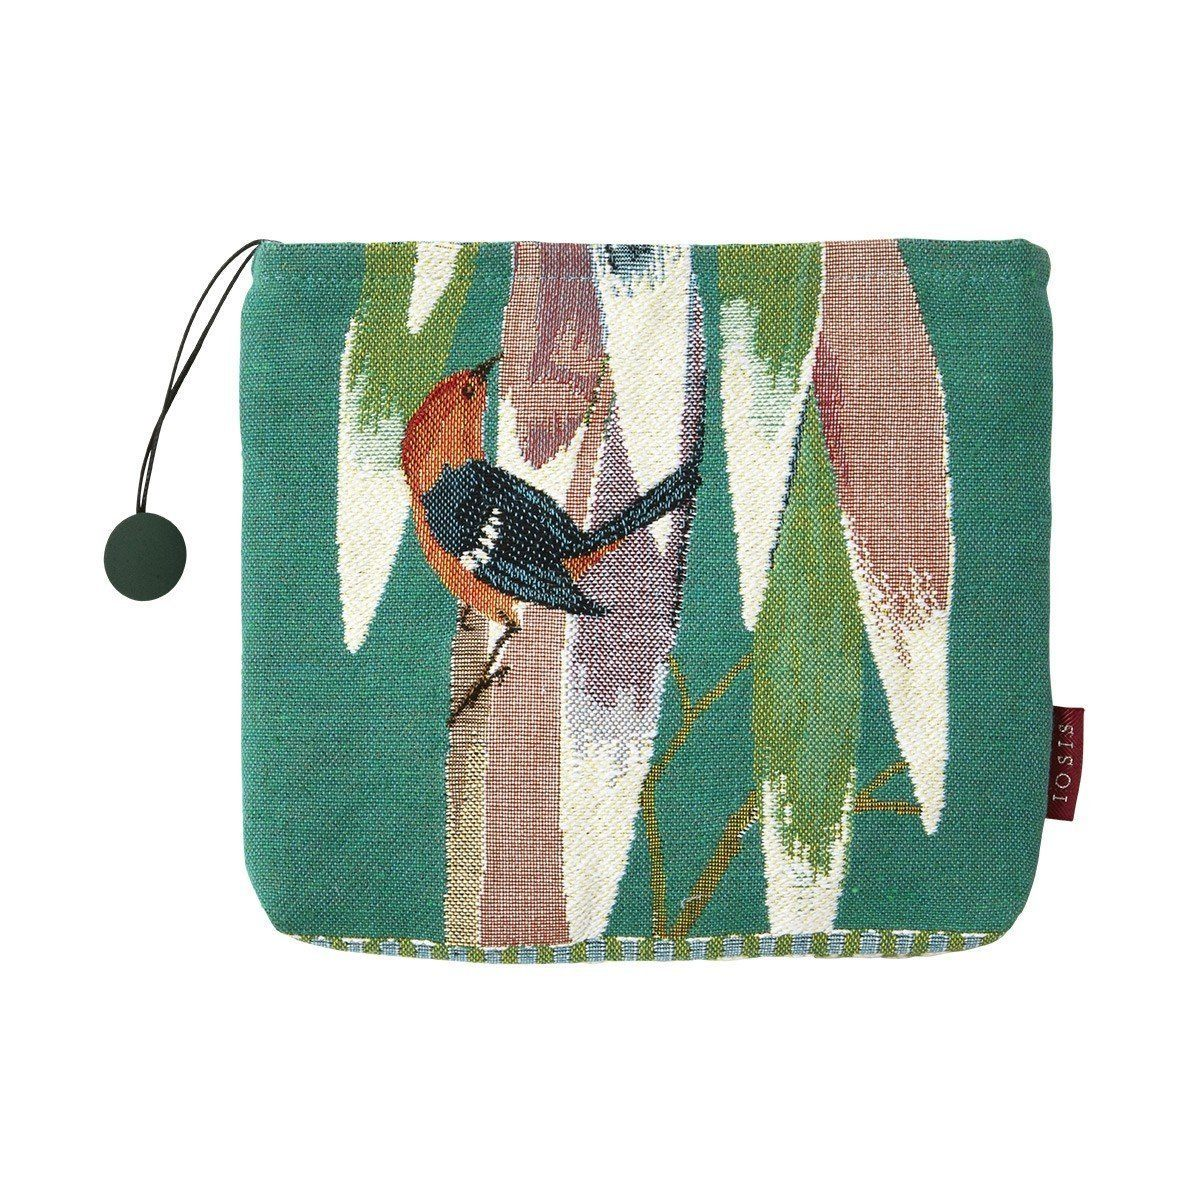 Idylle Menthe Green Tote by Iosis